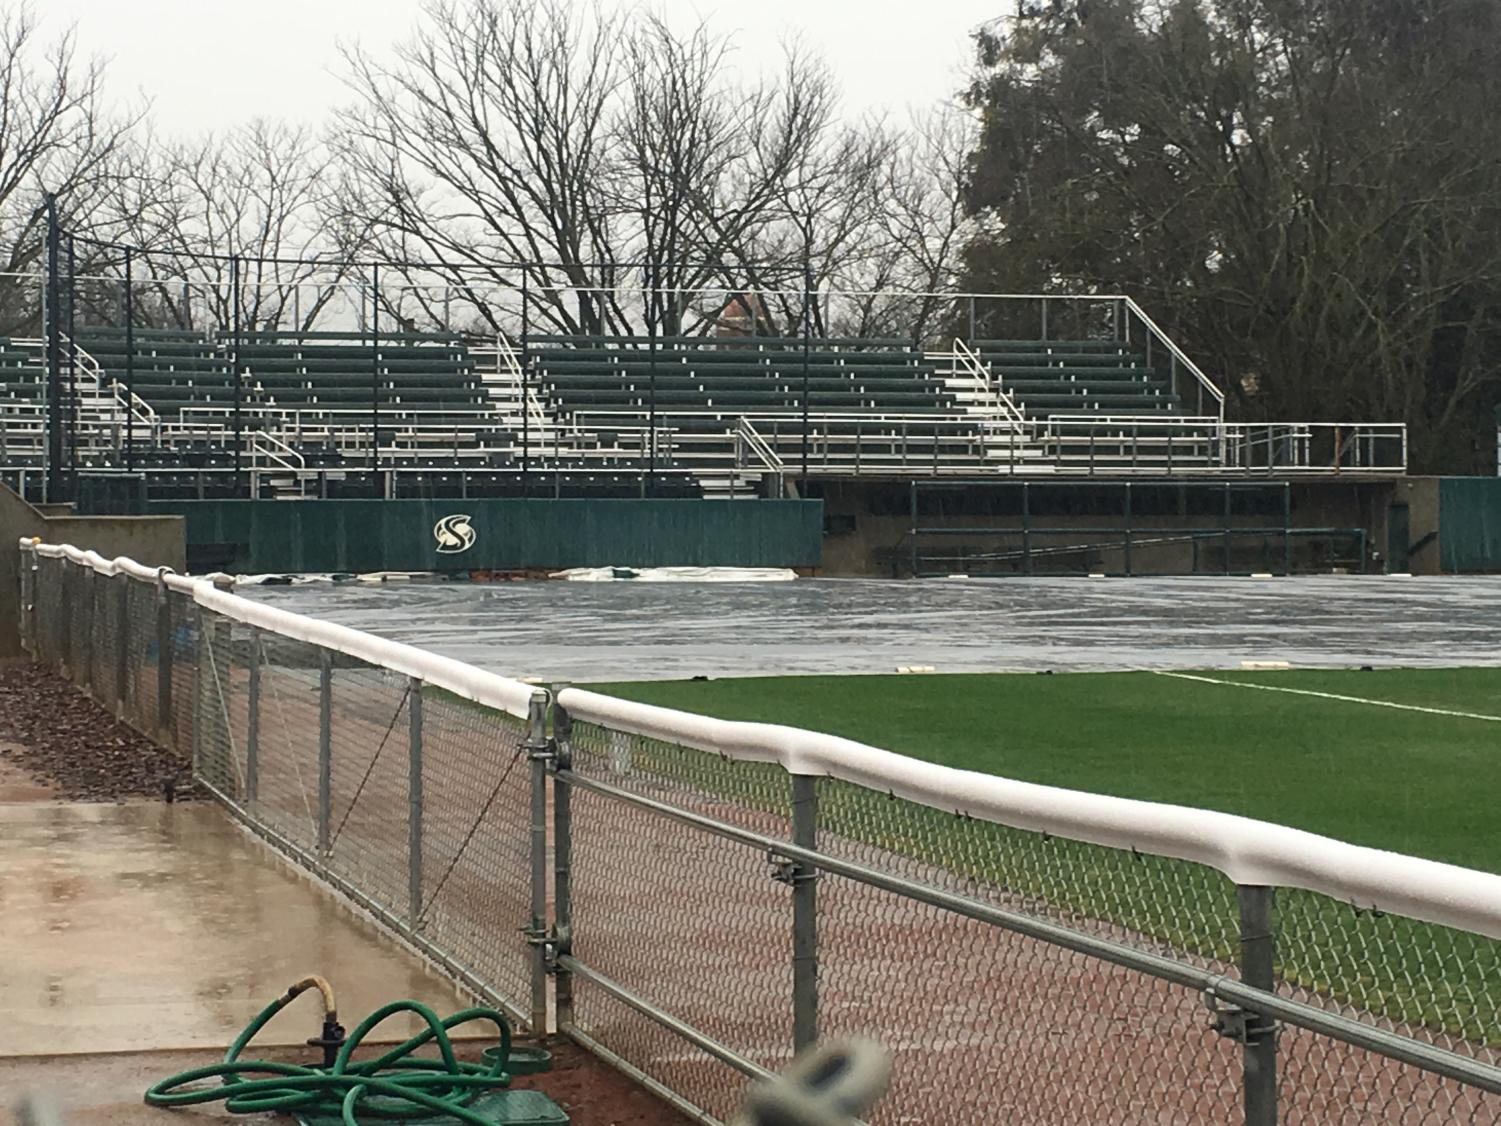 Sac State softball has postponed its game against UC Davis on Tuesday until April 30 according to Sac State athletics.